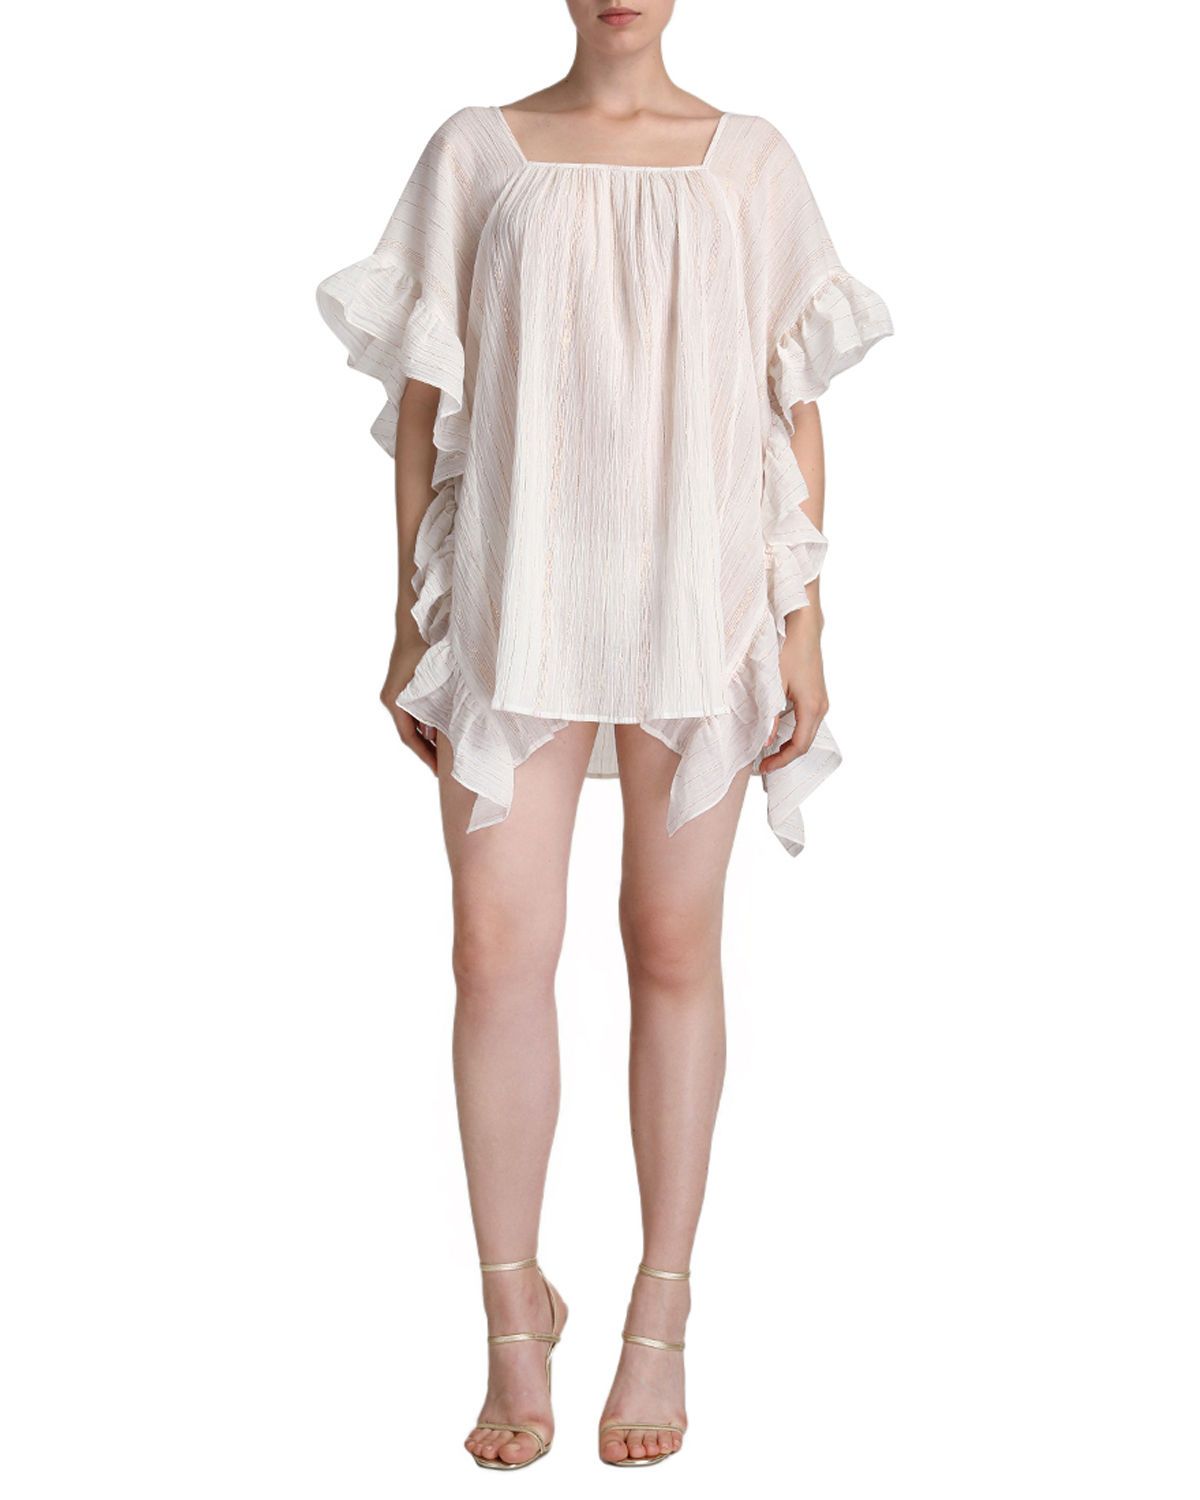 Sequin Shimmer Caftan with Ruffle Accent